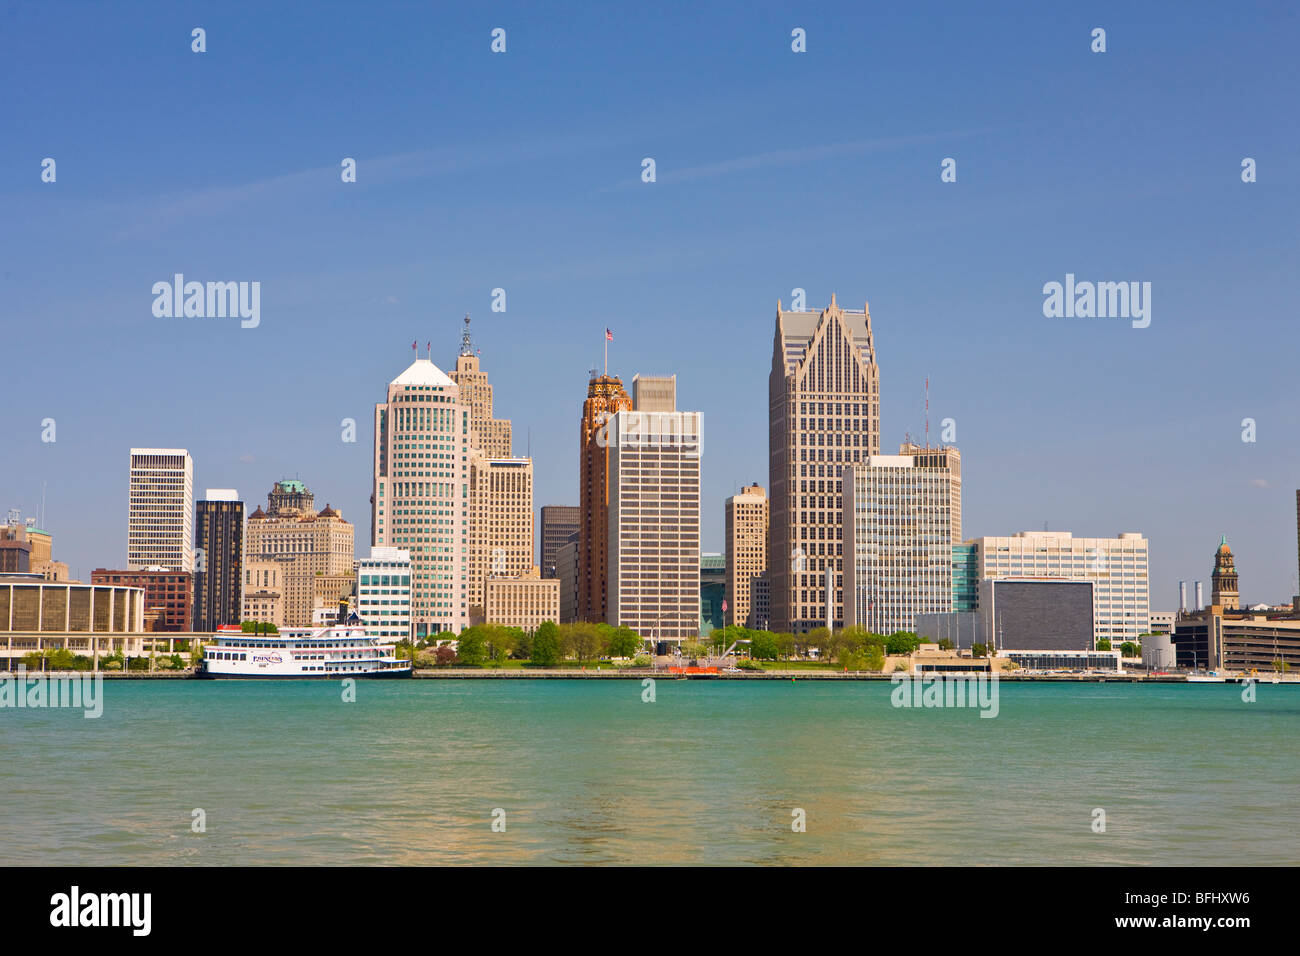 Skyline of the city of Detroit on the Detroit River in Michigan, USA seen from the city of Windsor, Ontario, Canada - Stock Image